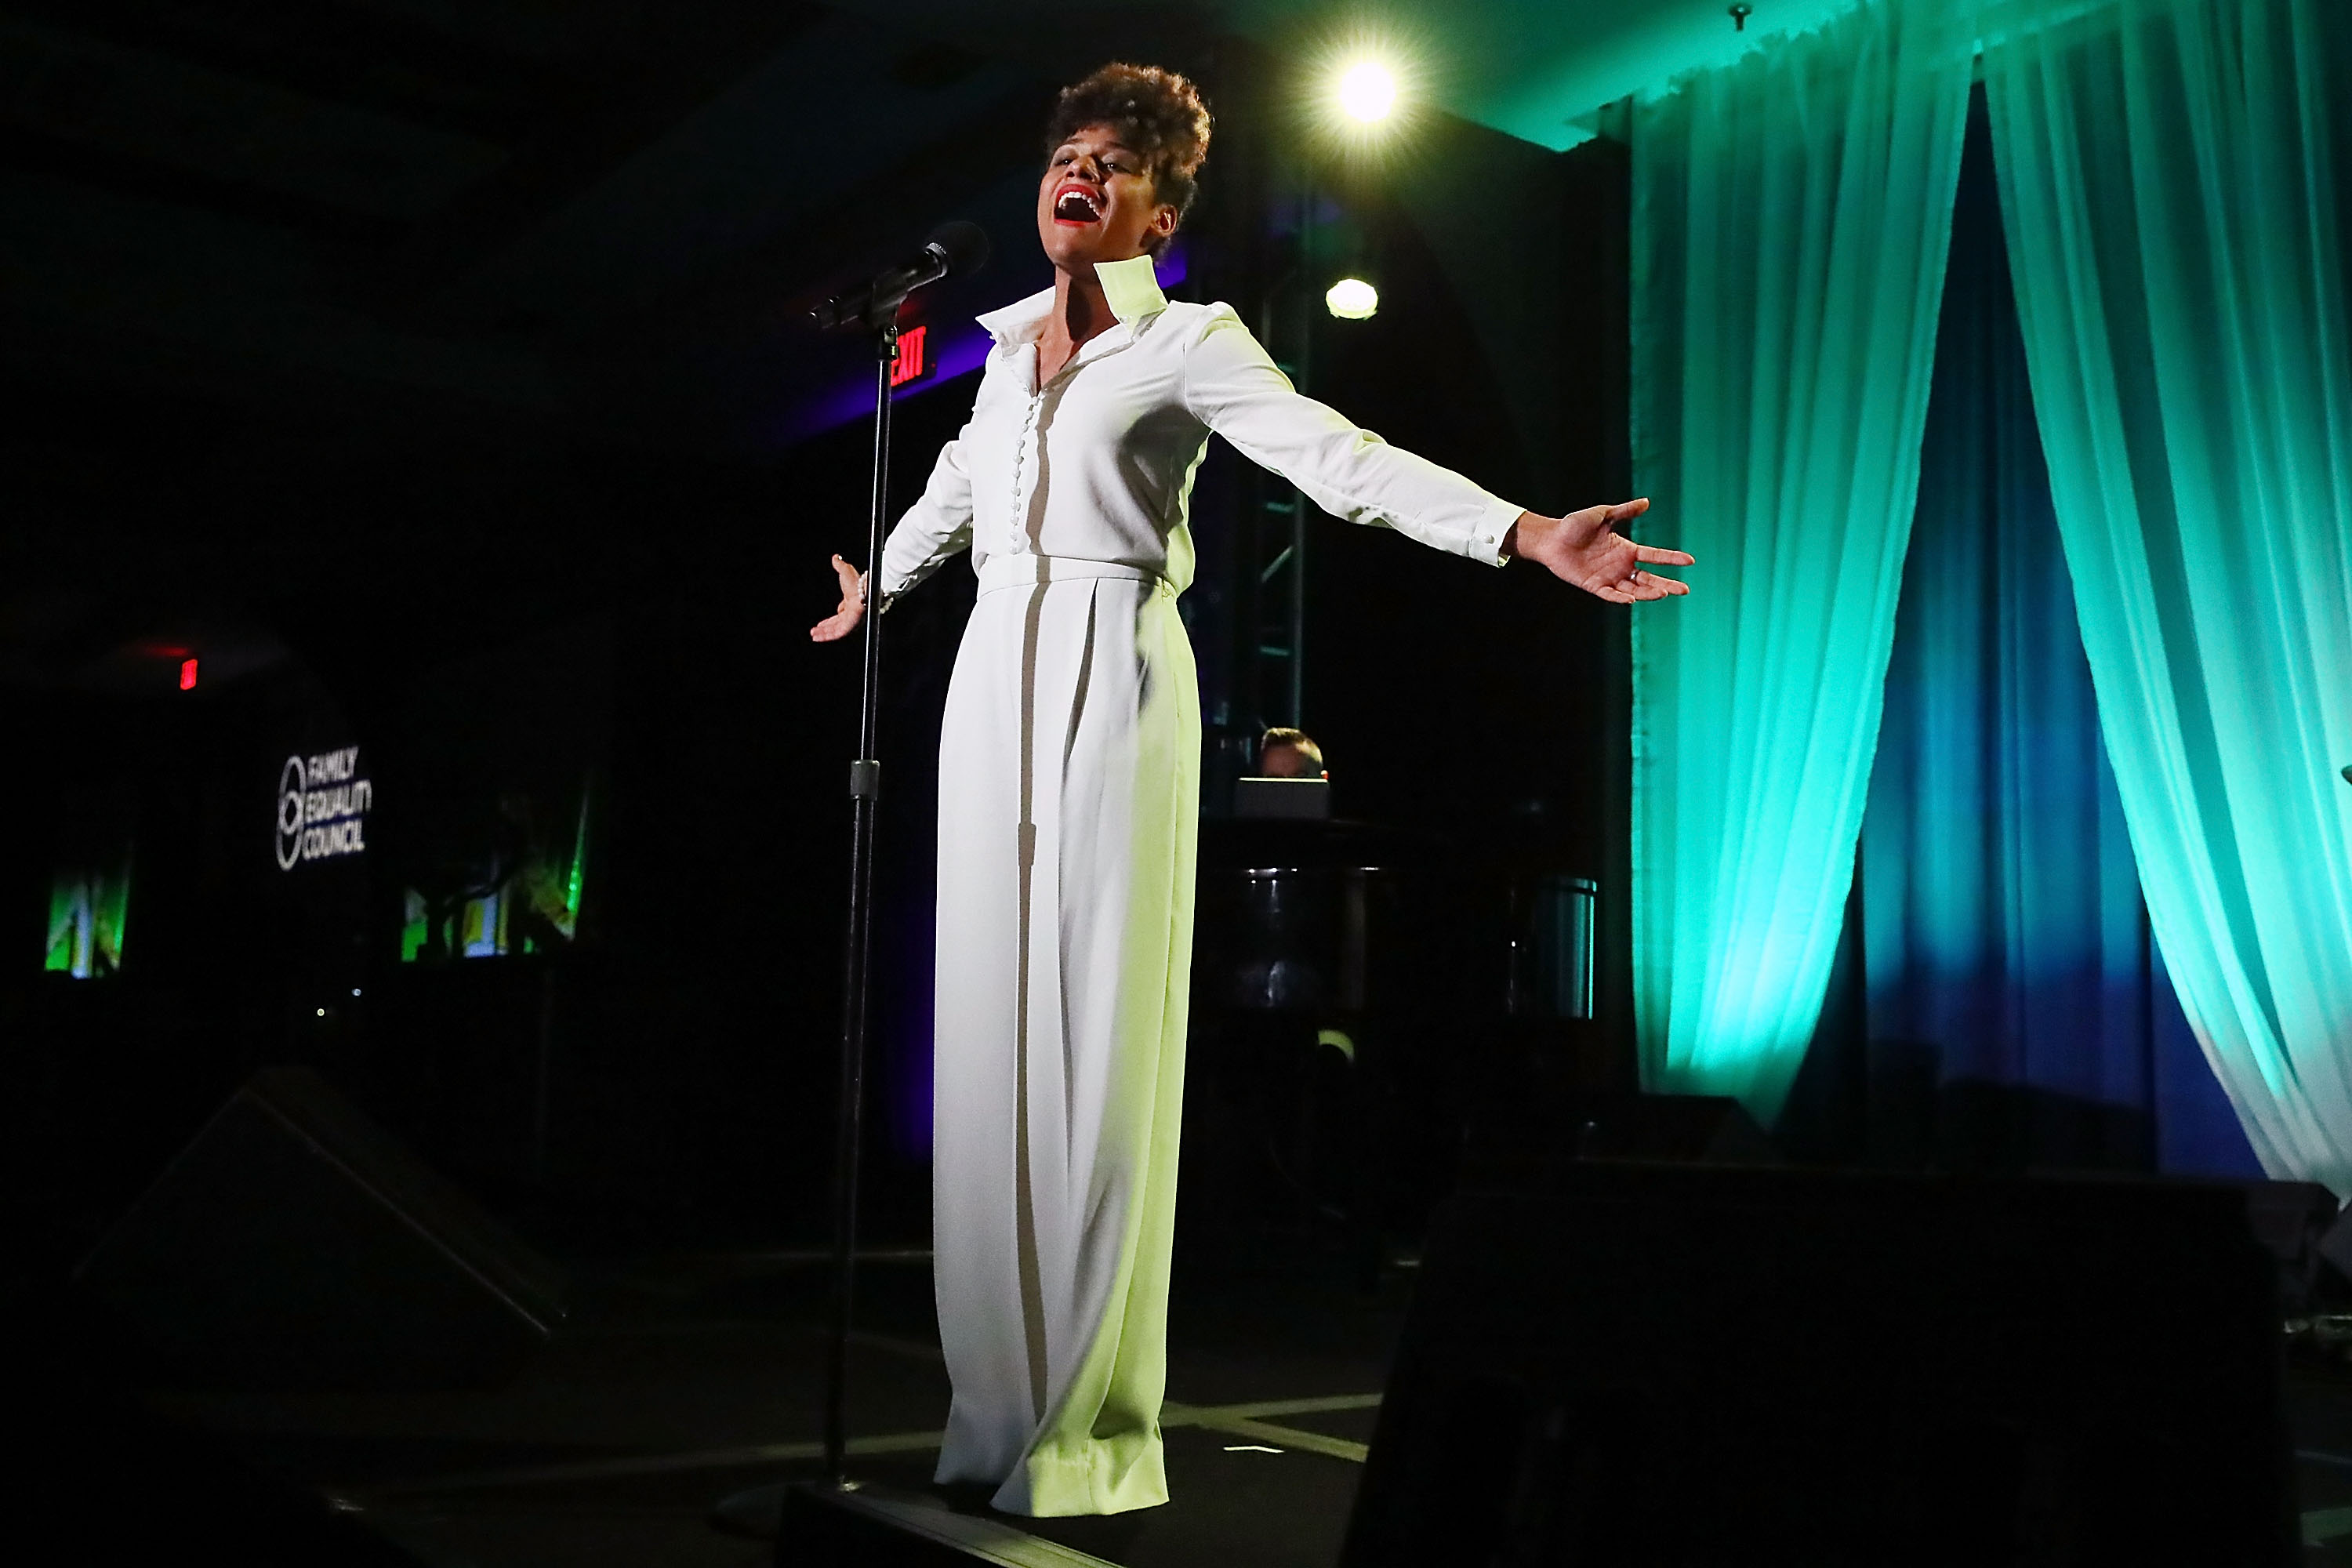 New Yorkers Fete Night At The Pier Gala With Entertainment And Moving Stories